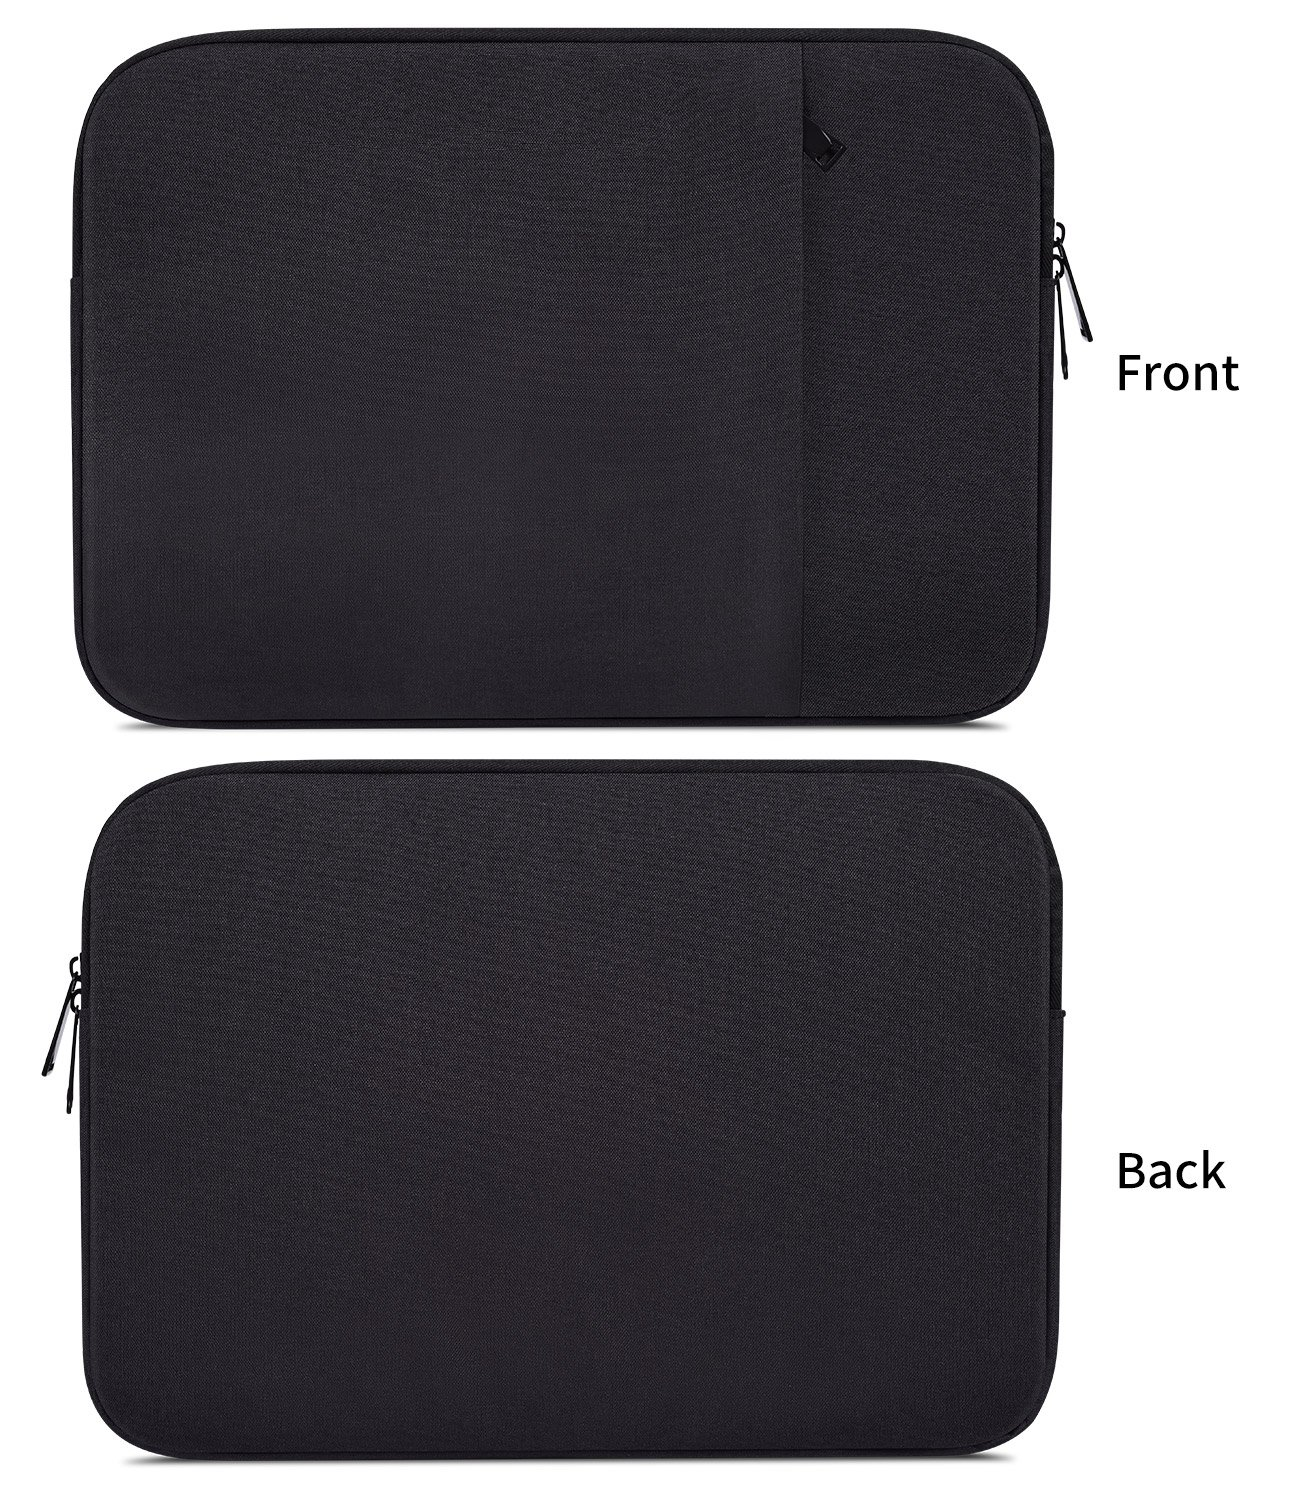 15.6 Waterpoof Laptop Sleeve Case for Acer Aspire E 15 E5-575, Acer Predator Helios 300 15.6, Lenovo Flex 5 15, Dell Inspiron 15, HP 15.6 Inch Laptop, MSI GL62M 15.6 Protective Carrying Bag, Black